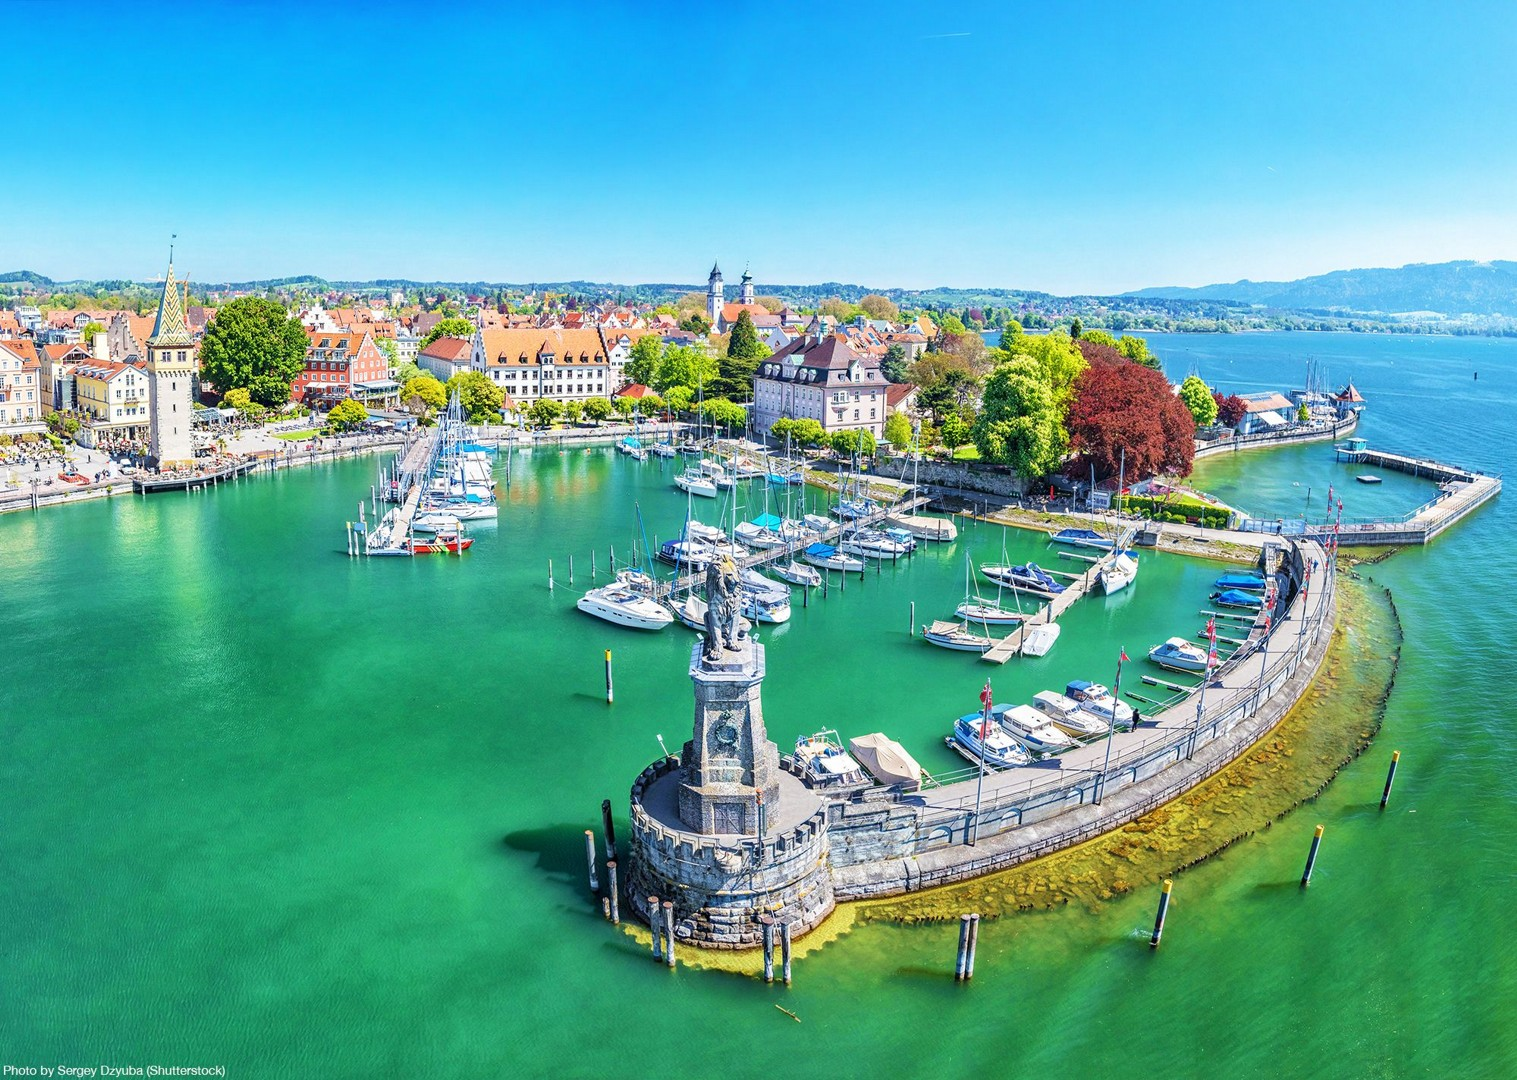 shutterstock_650922073By Sergey Dzyuba.jpg - Germany, Austria and Switzerland - Lake Constance - Self-Guided Leisure Cycling Holiday - Leisure Cycling